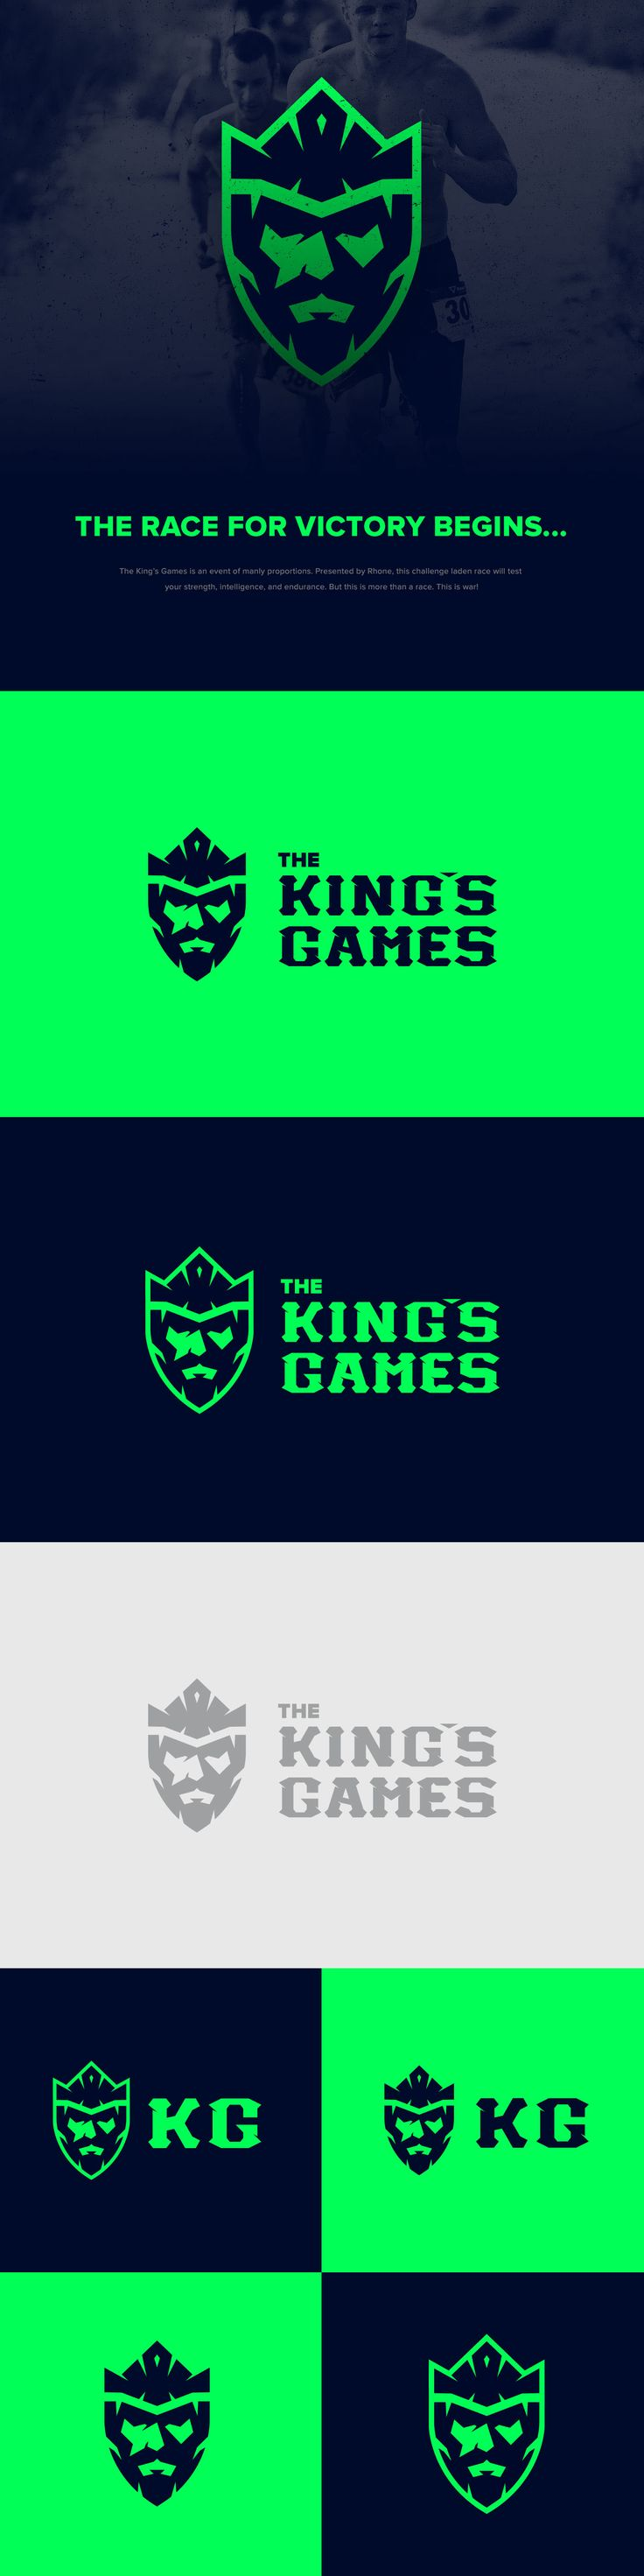 The King's Games on Behance